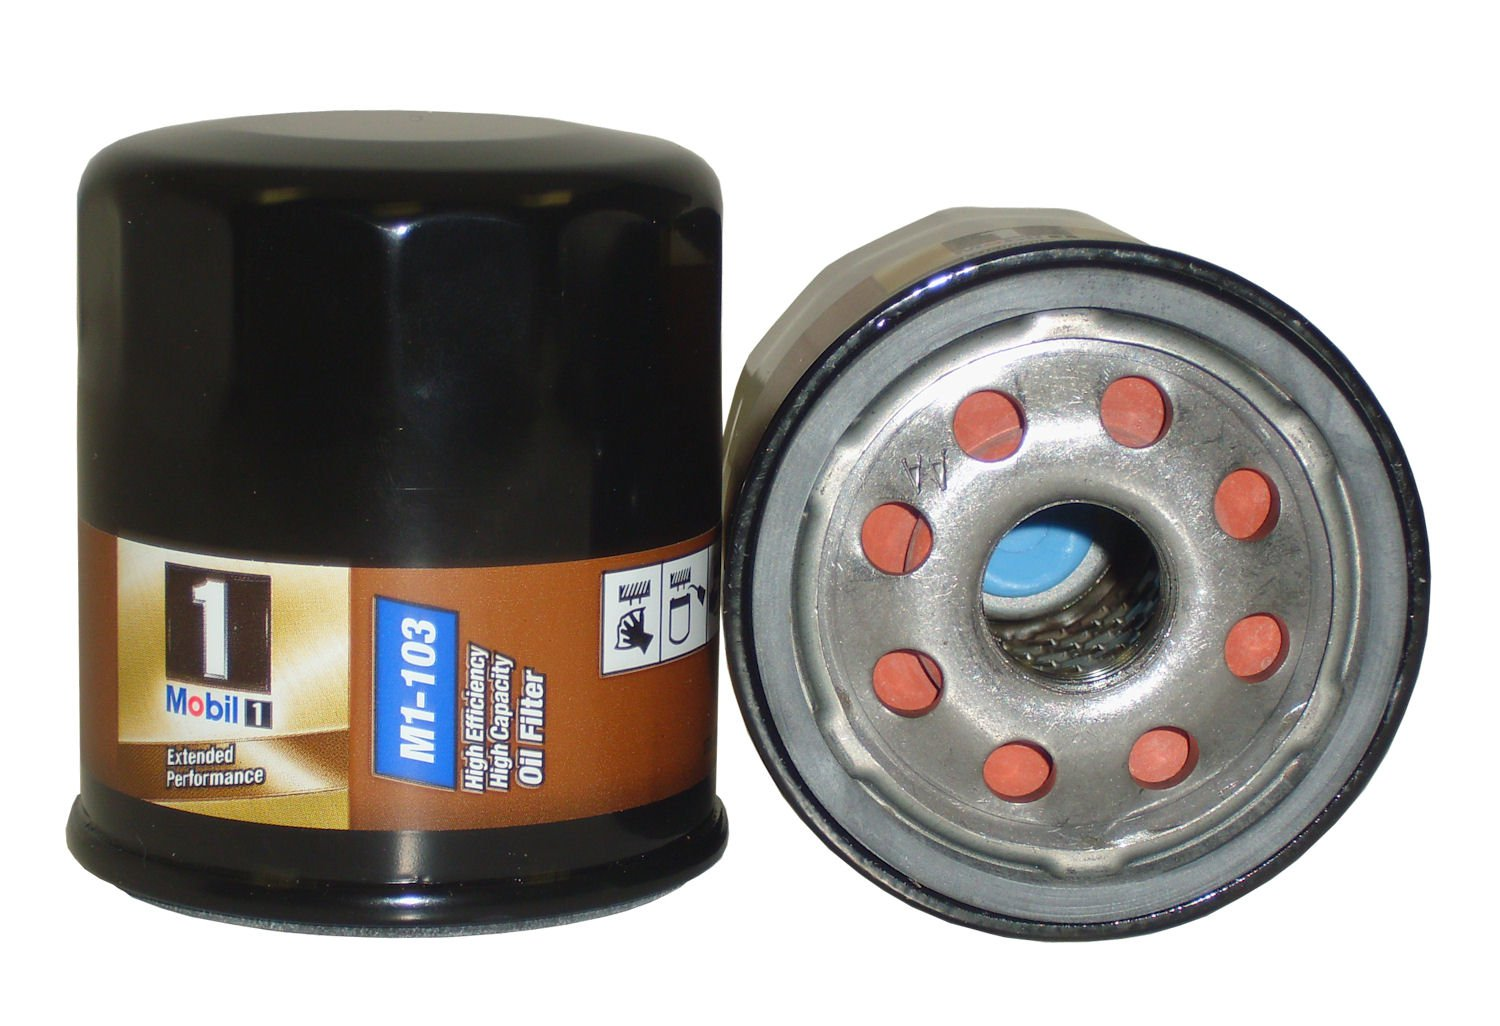 Mobil 1 Oil Filter >> Details About Mobil 1 Extended Performance High Efficiency High Capacity Oil Filter M1 104a